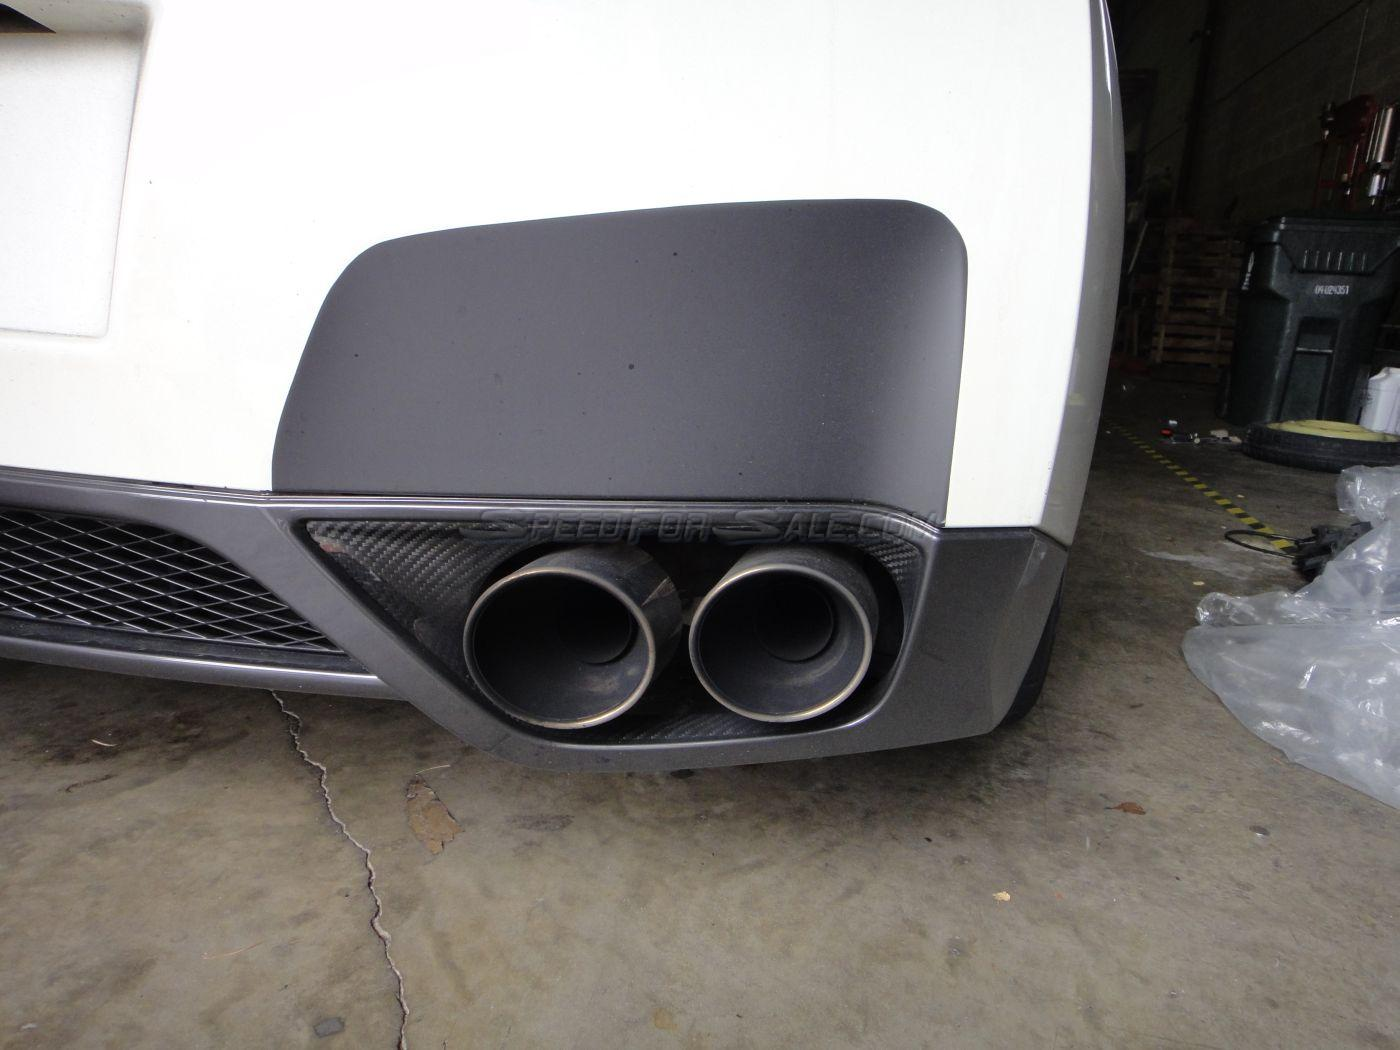 SpeedForSale's Rear Bumper Exhaust Guards Nissan GT-R 2008-16